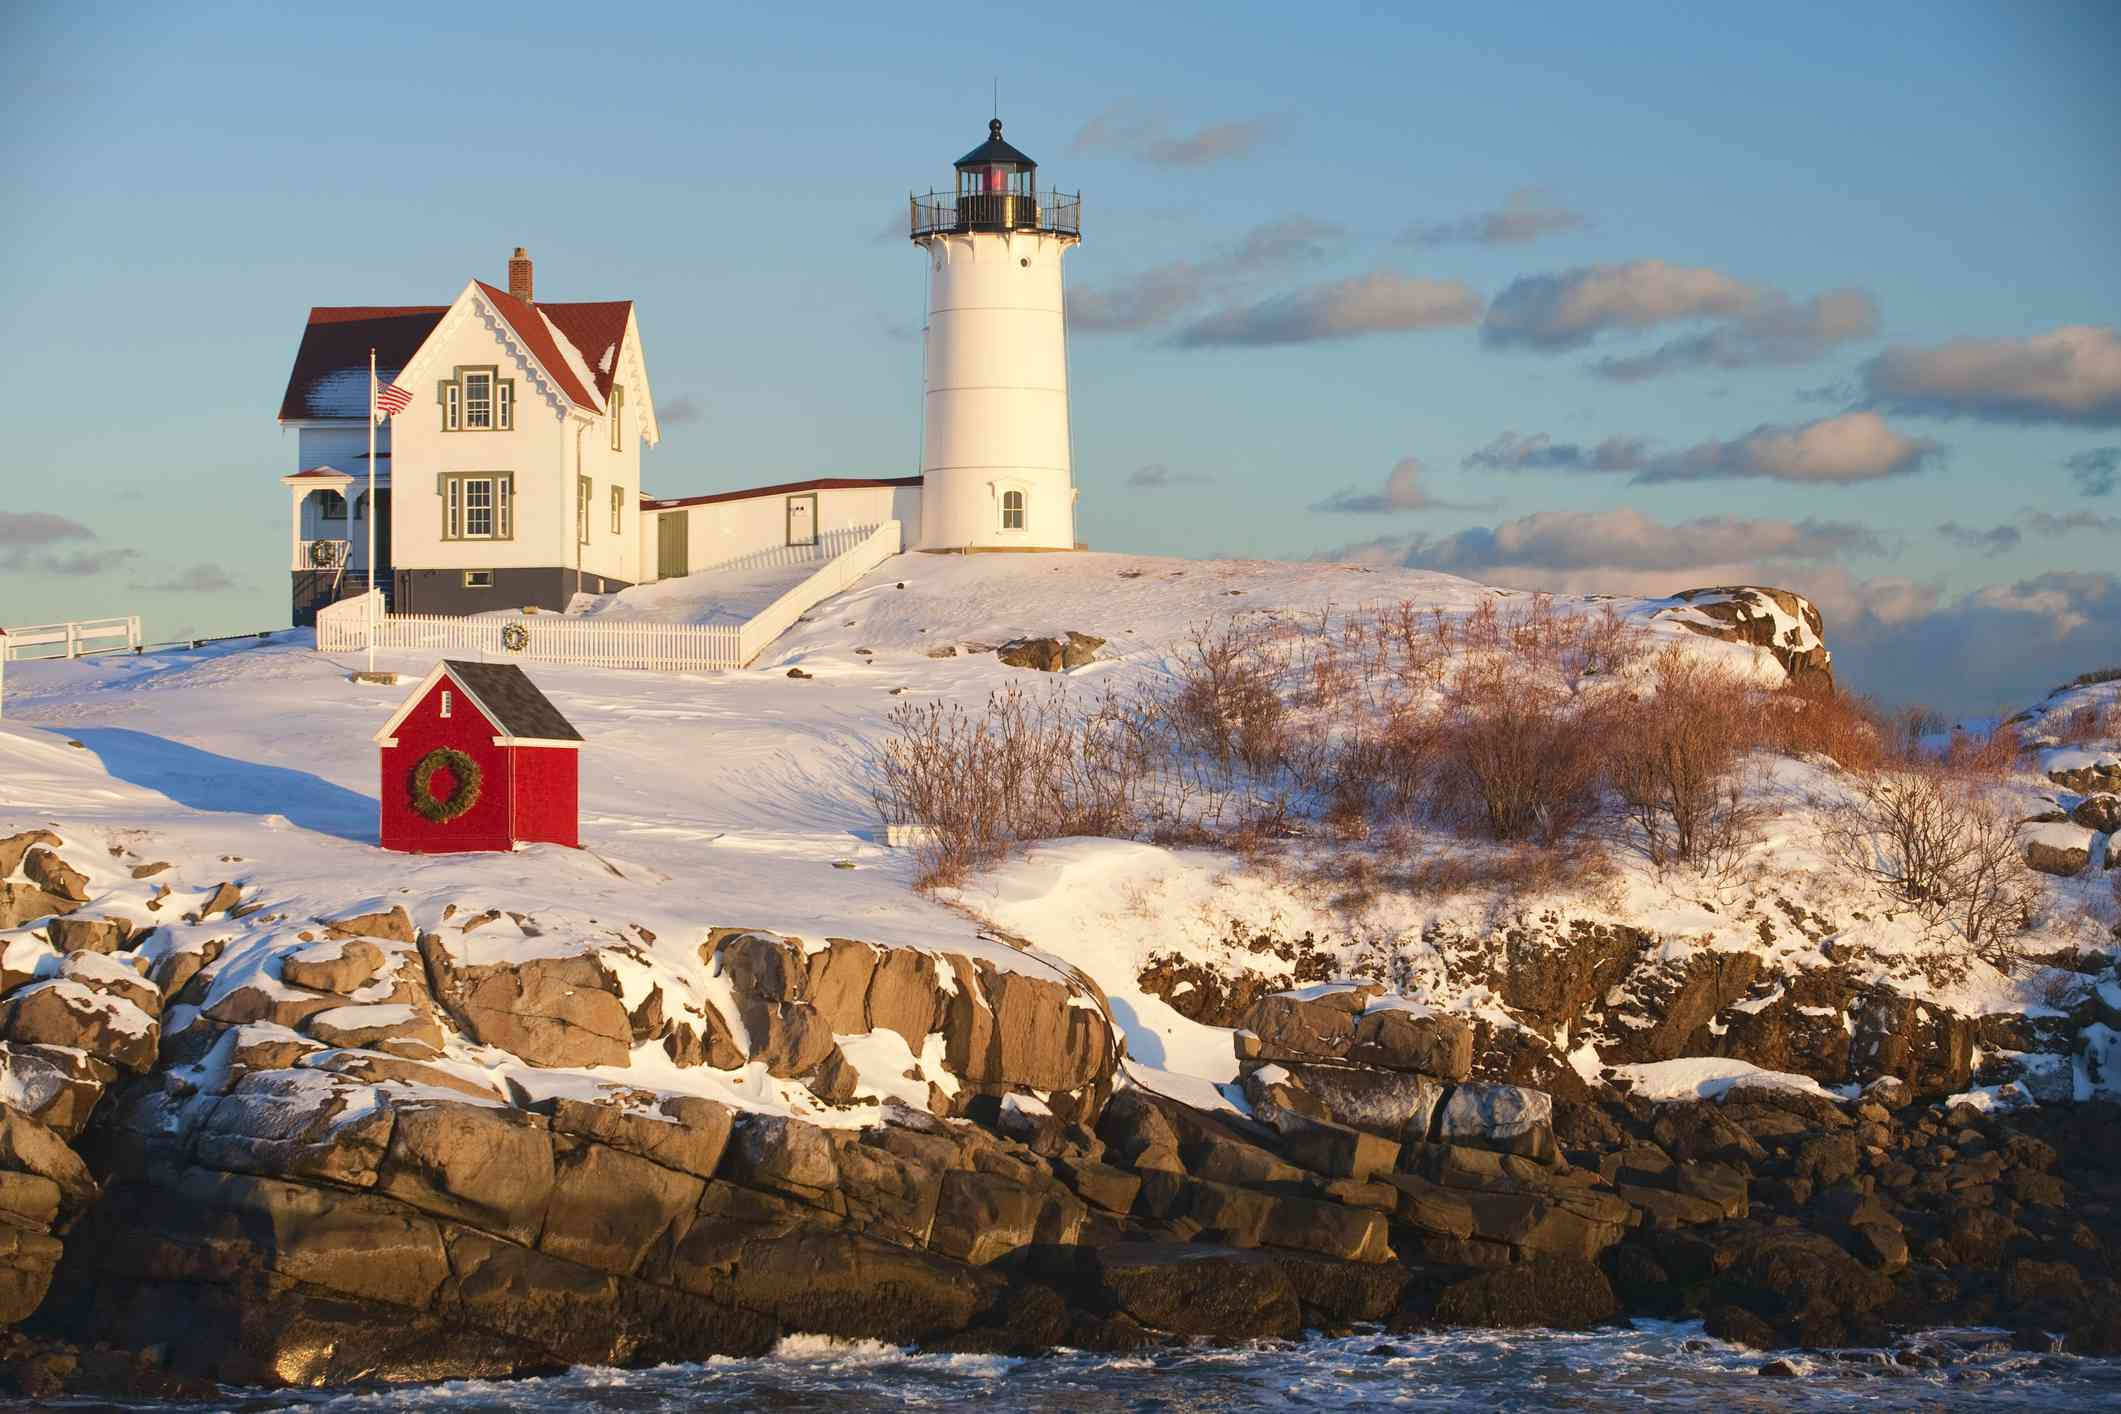 Cape Neddick Lighthouse with snow covering the base of the lighthouse and surrounding rocks